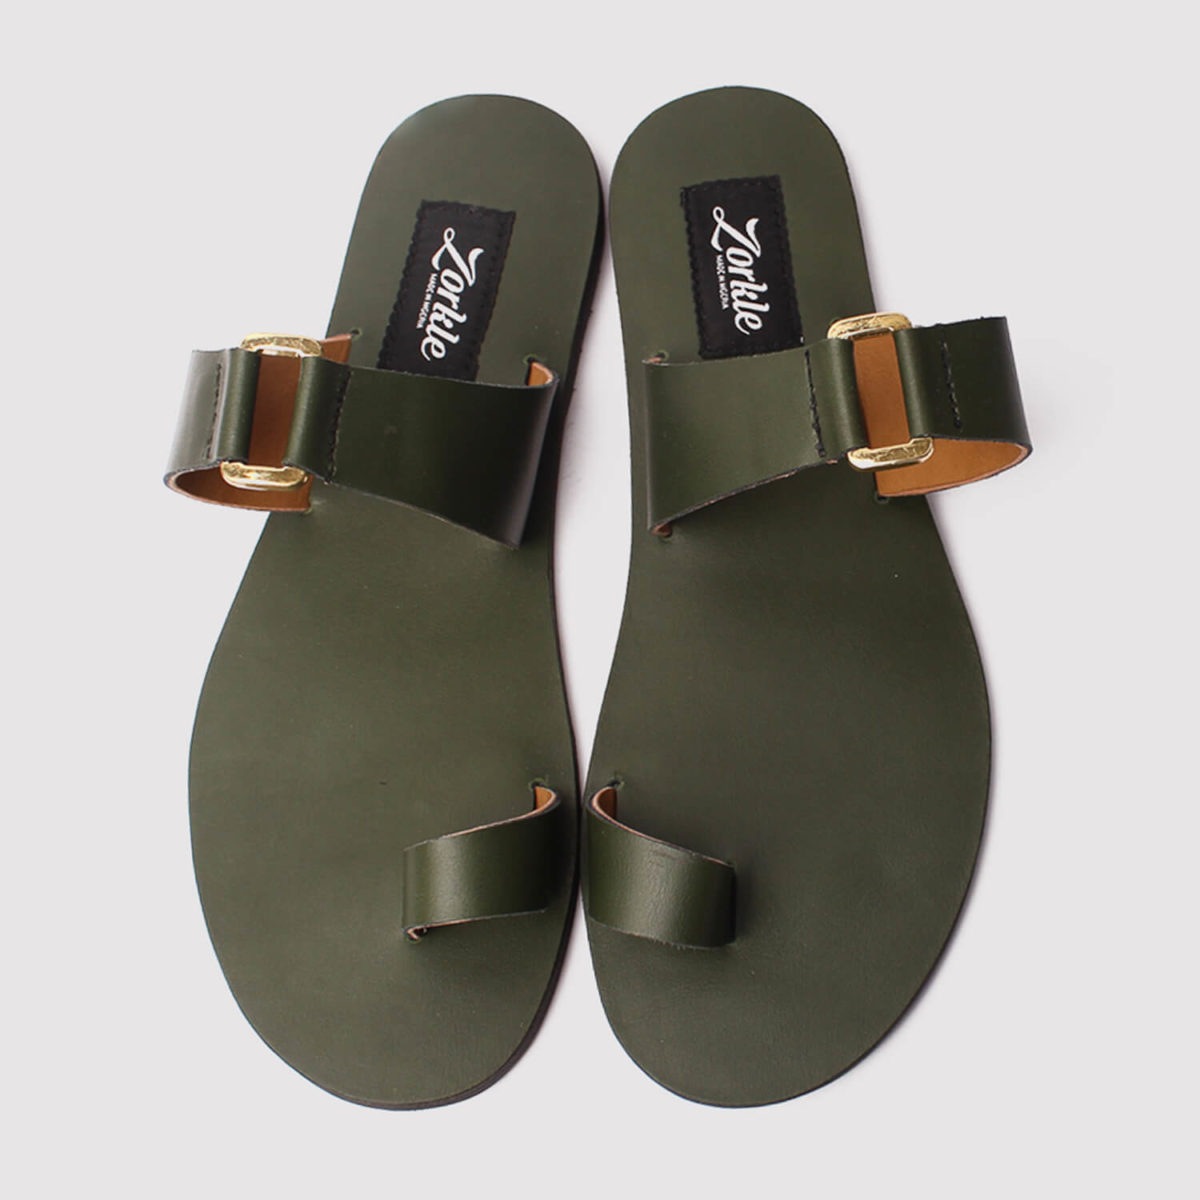 kweenly slippers green leather zorkle shoes lagos nigeria